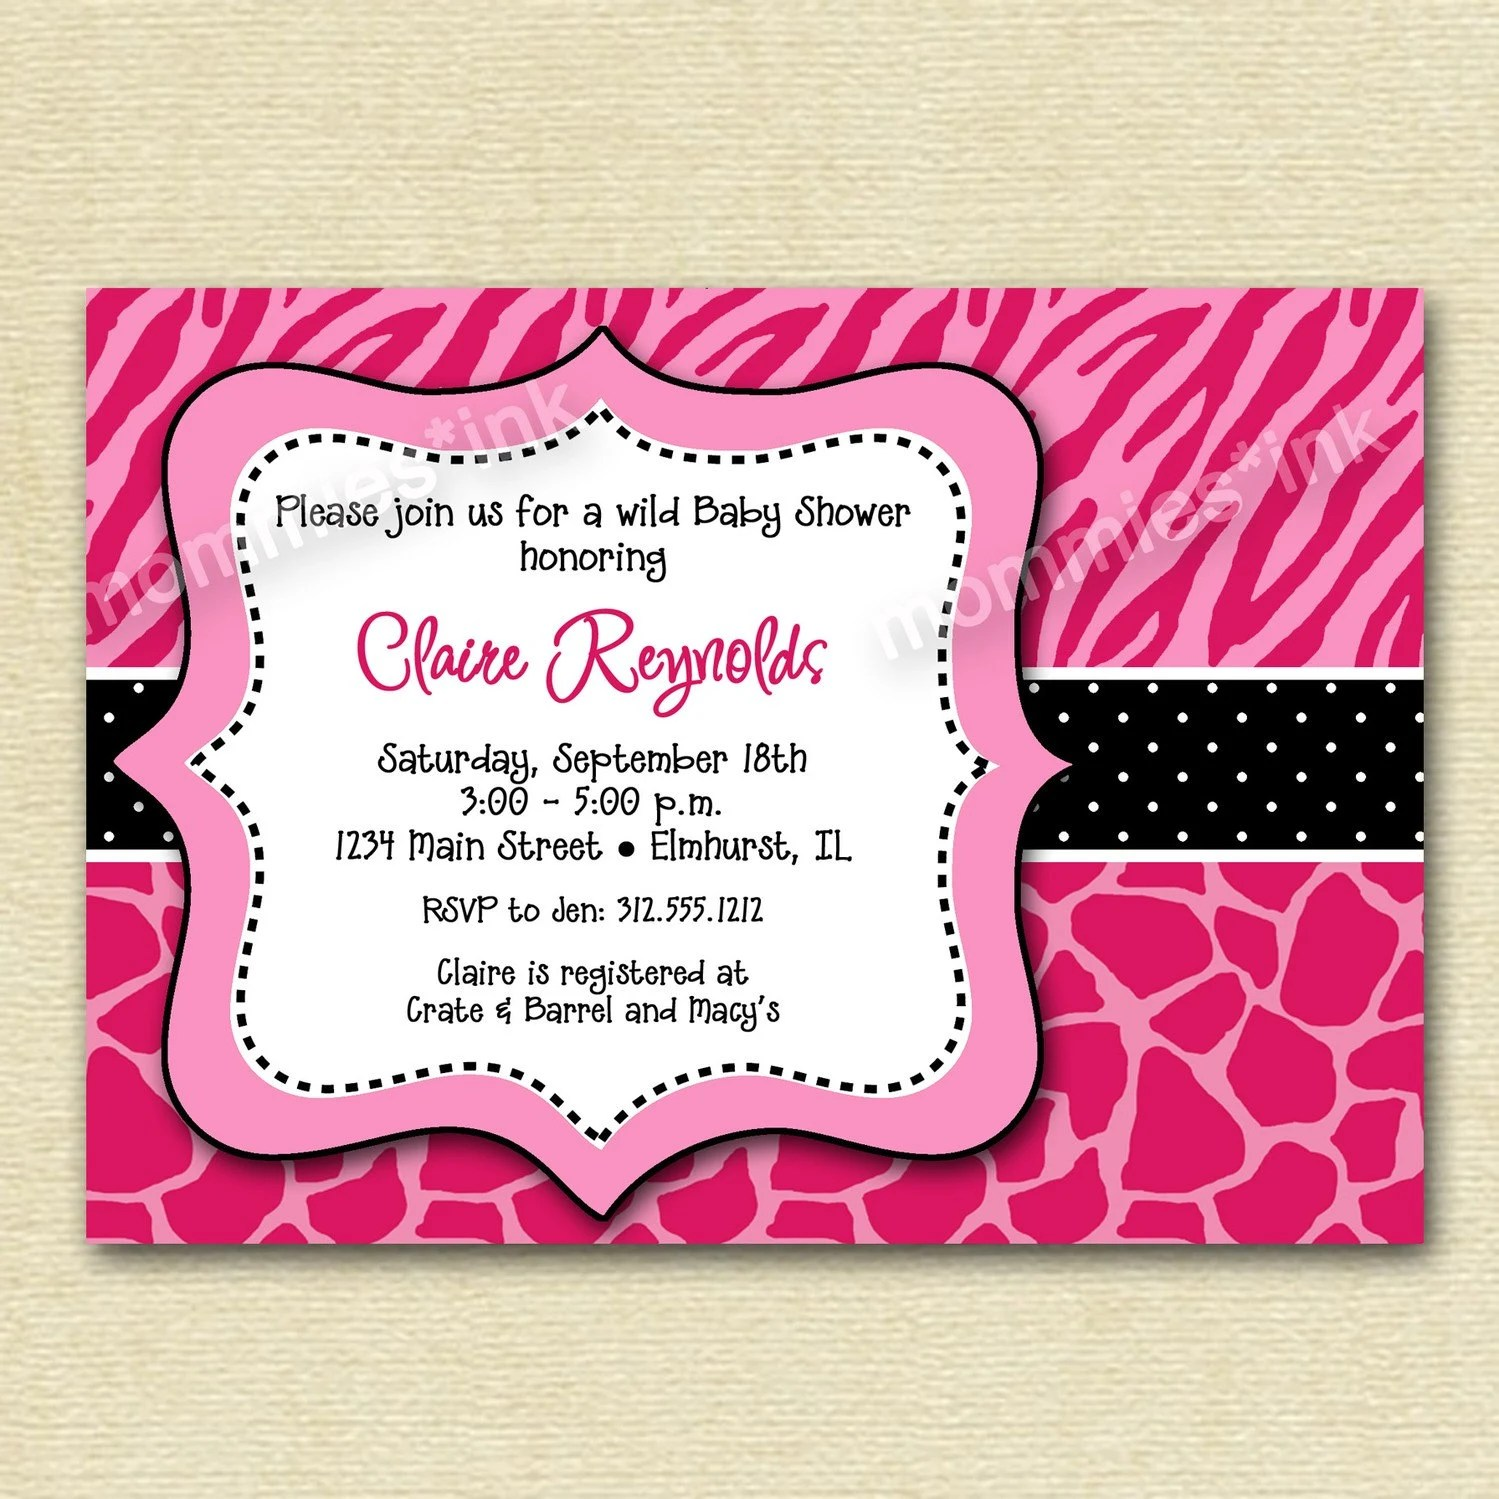 Design And Print Baby Shower Invitations